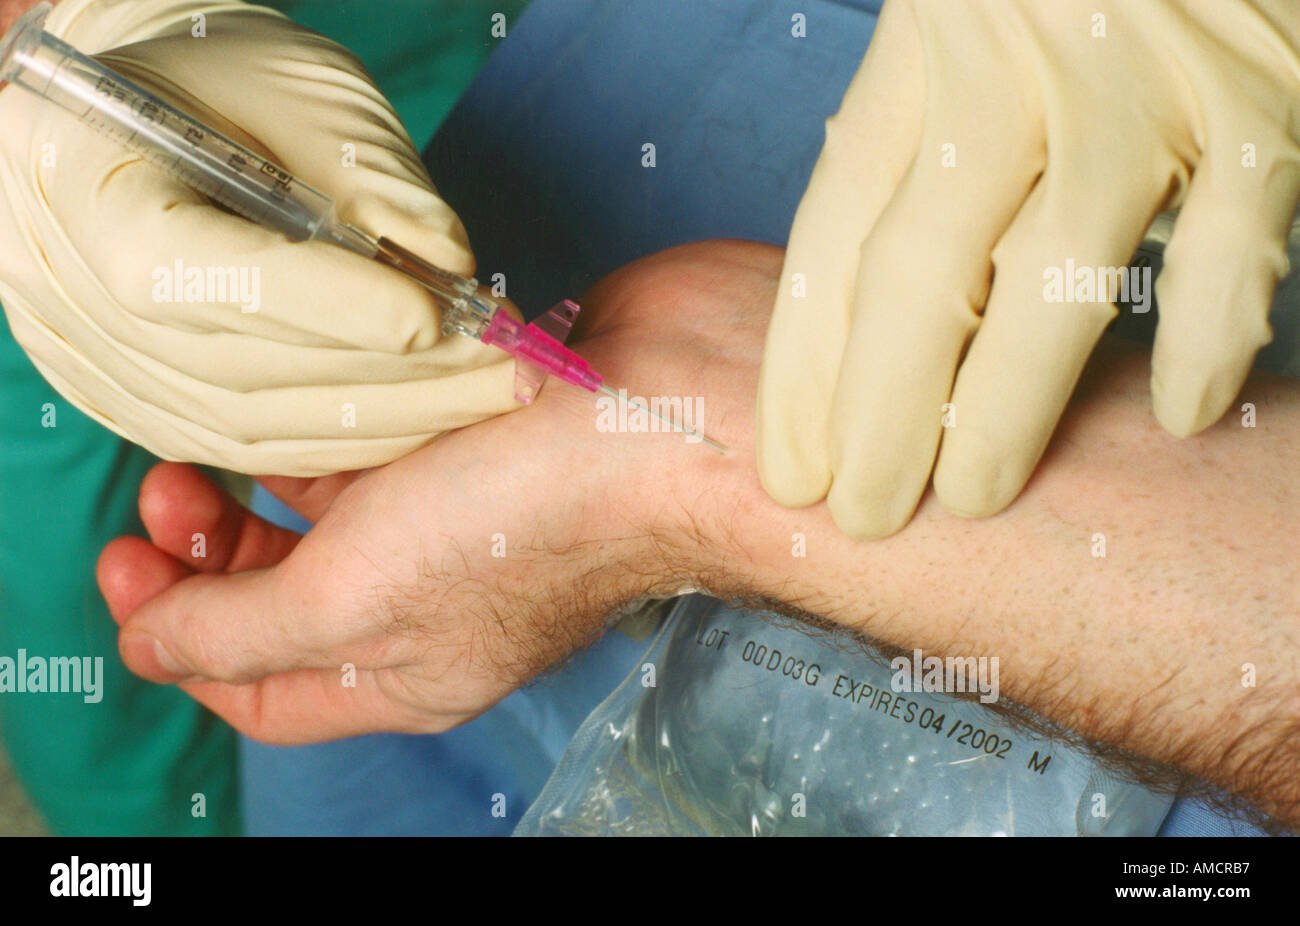 The Arterial Line : Arterial line stock photos images alamy